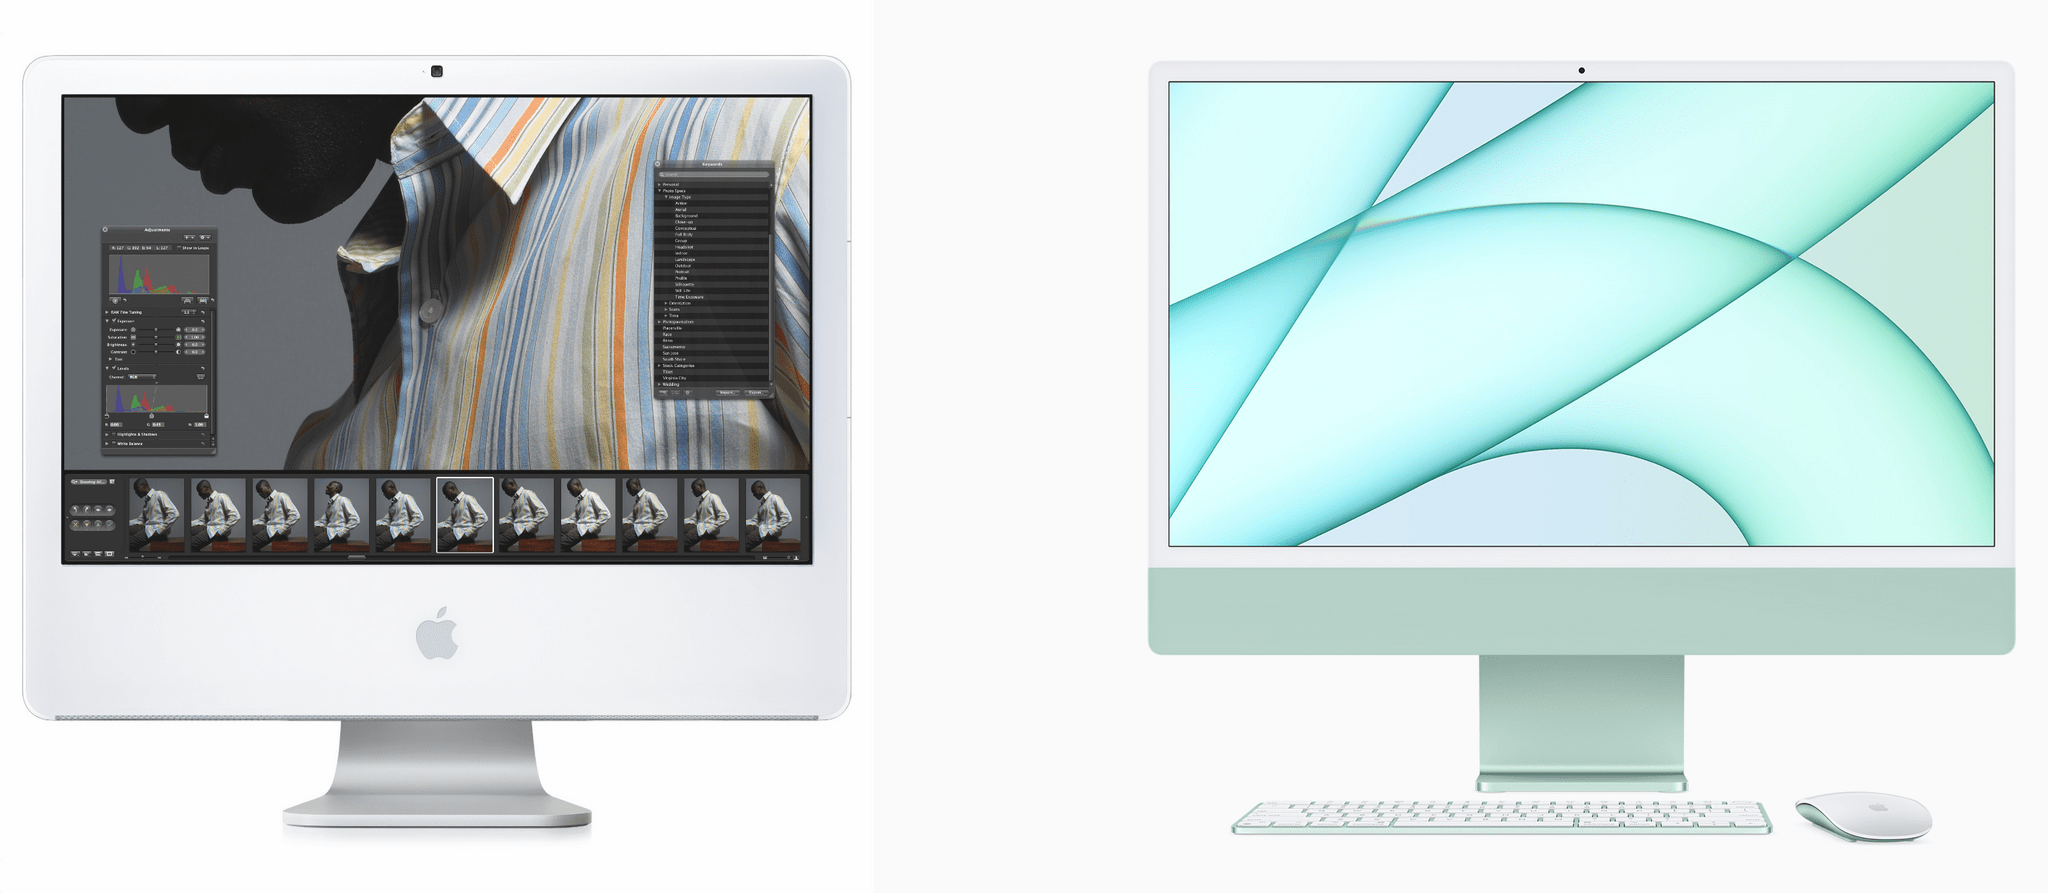 The iMac has come a long way since the first one I owned (left) and the latest M1 model (right).